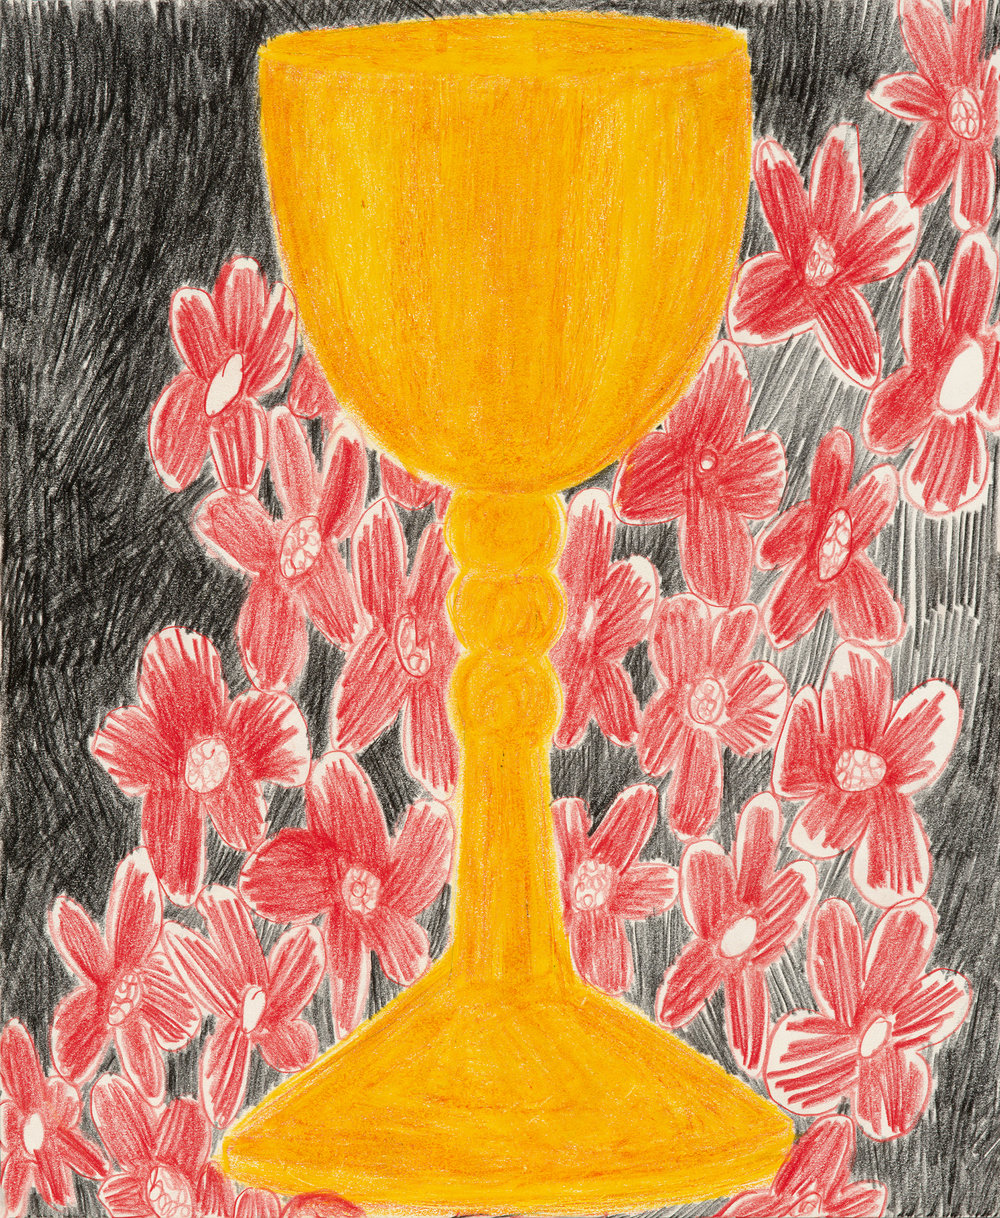 "Chalice, colored pencil on paper, 14"" x 17"", 2017"